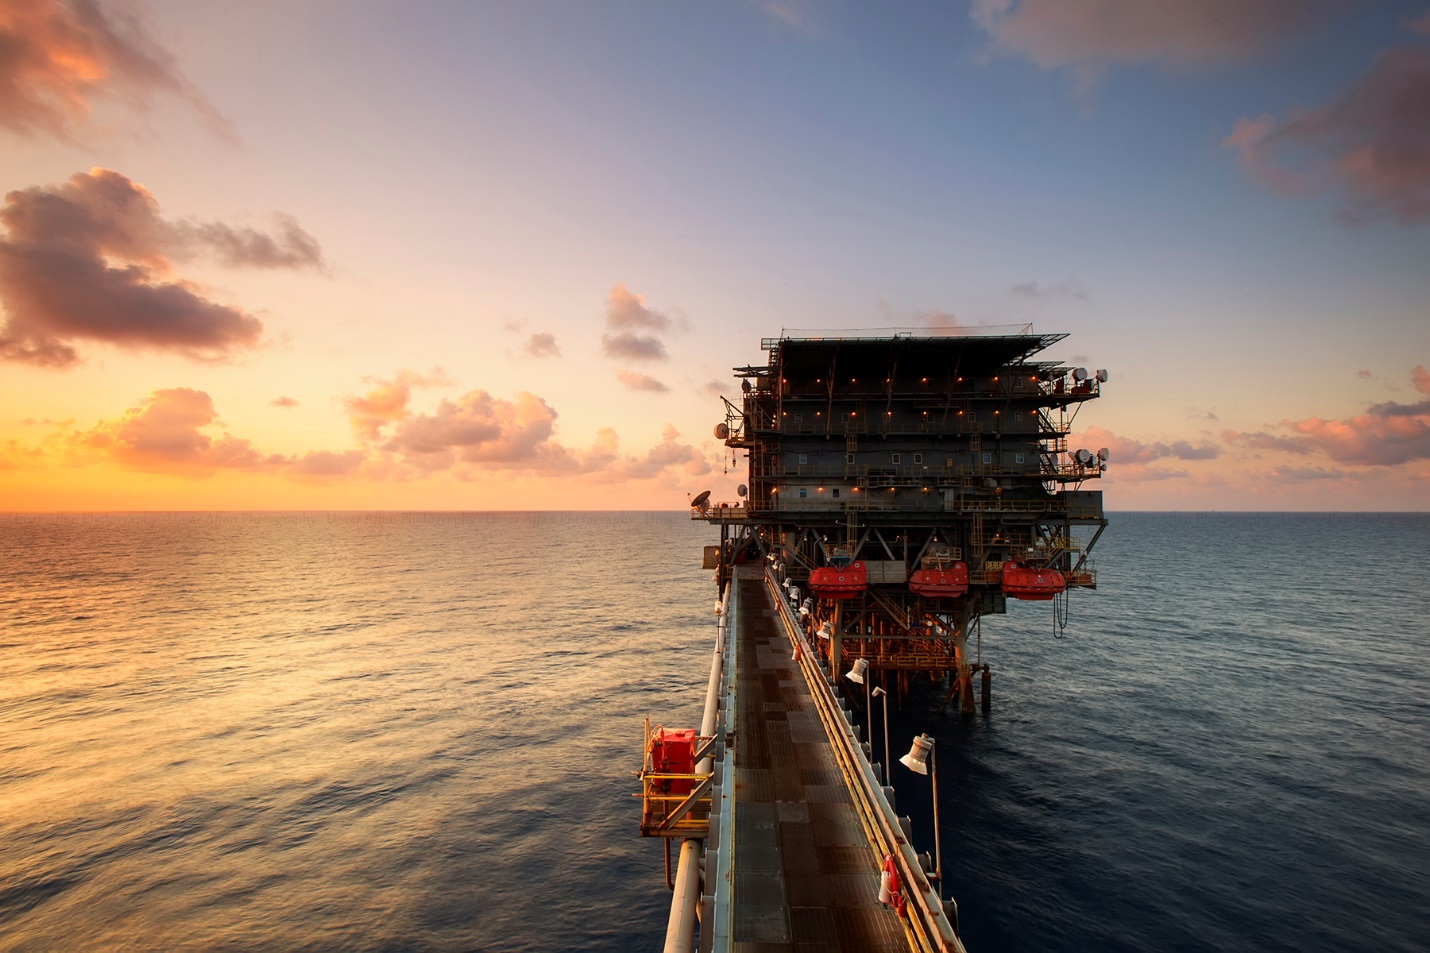 Injury Attorney for Offshore Oil Workers in Pesos, Texas